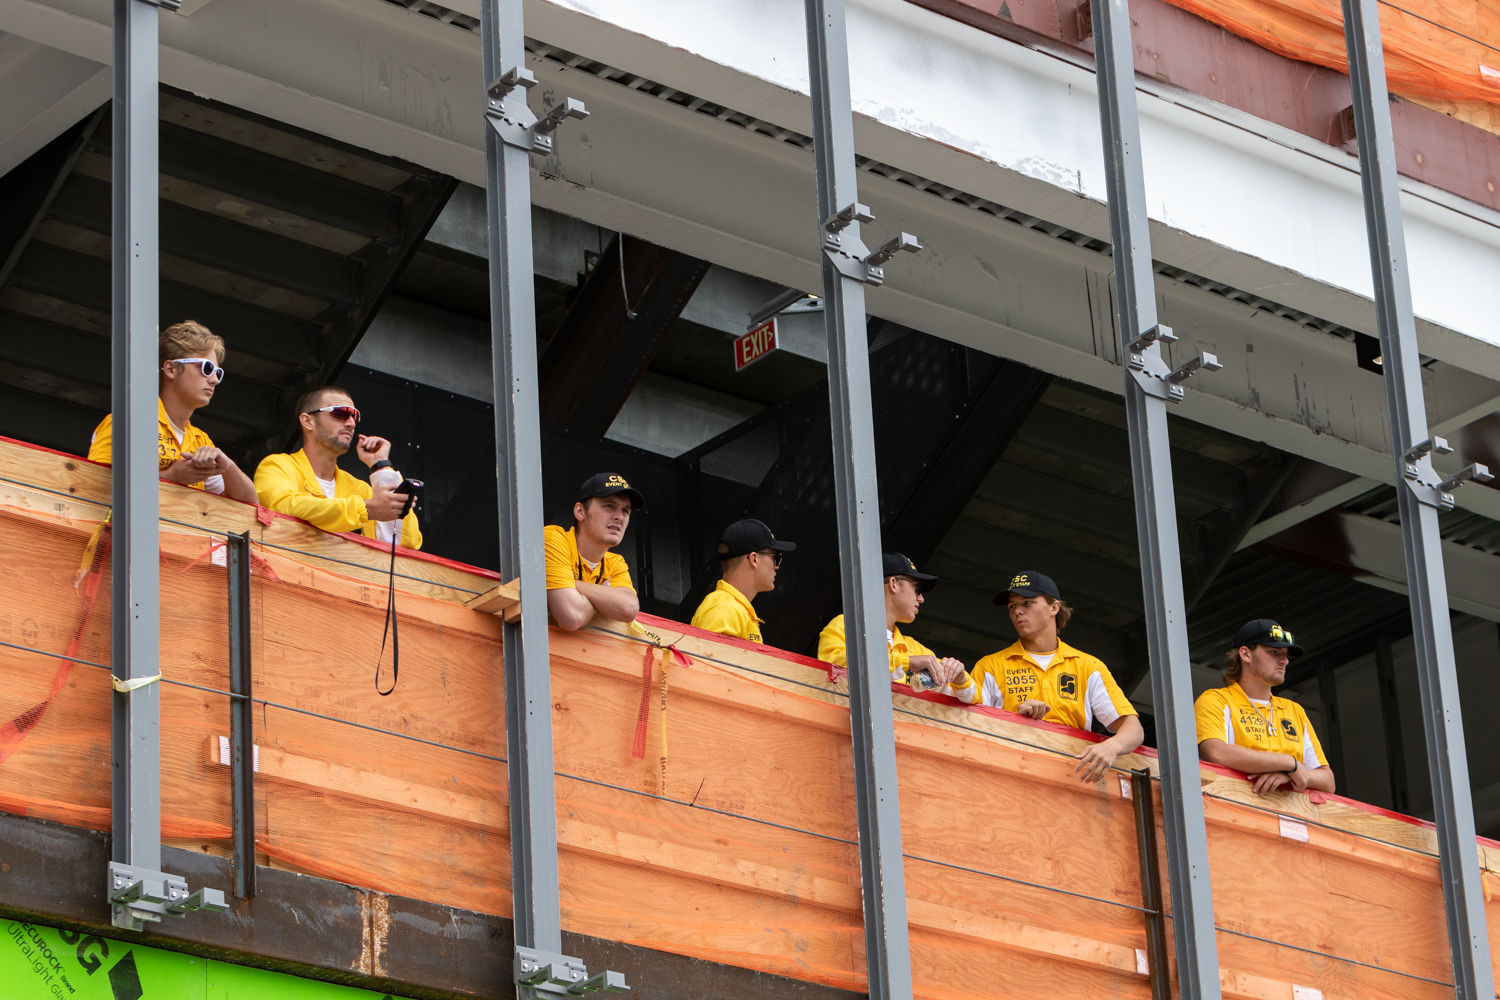 Stadium staff watches the growing crowd from a construction area in the north end zone of Kinnick Stadium before a football game against Iowa State University on Saturday, Sep. 8, 2018.